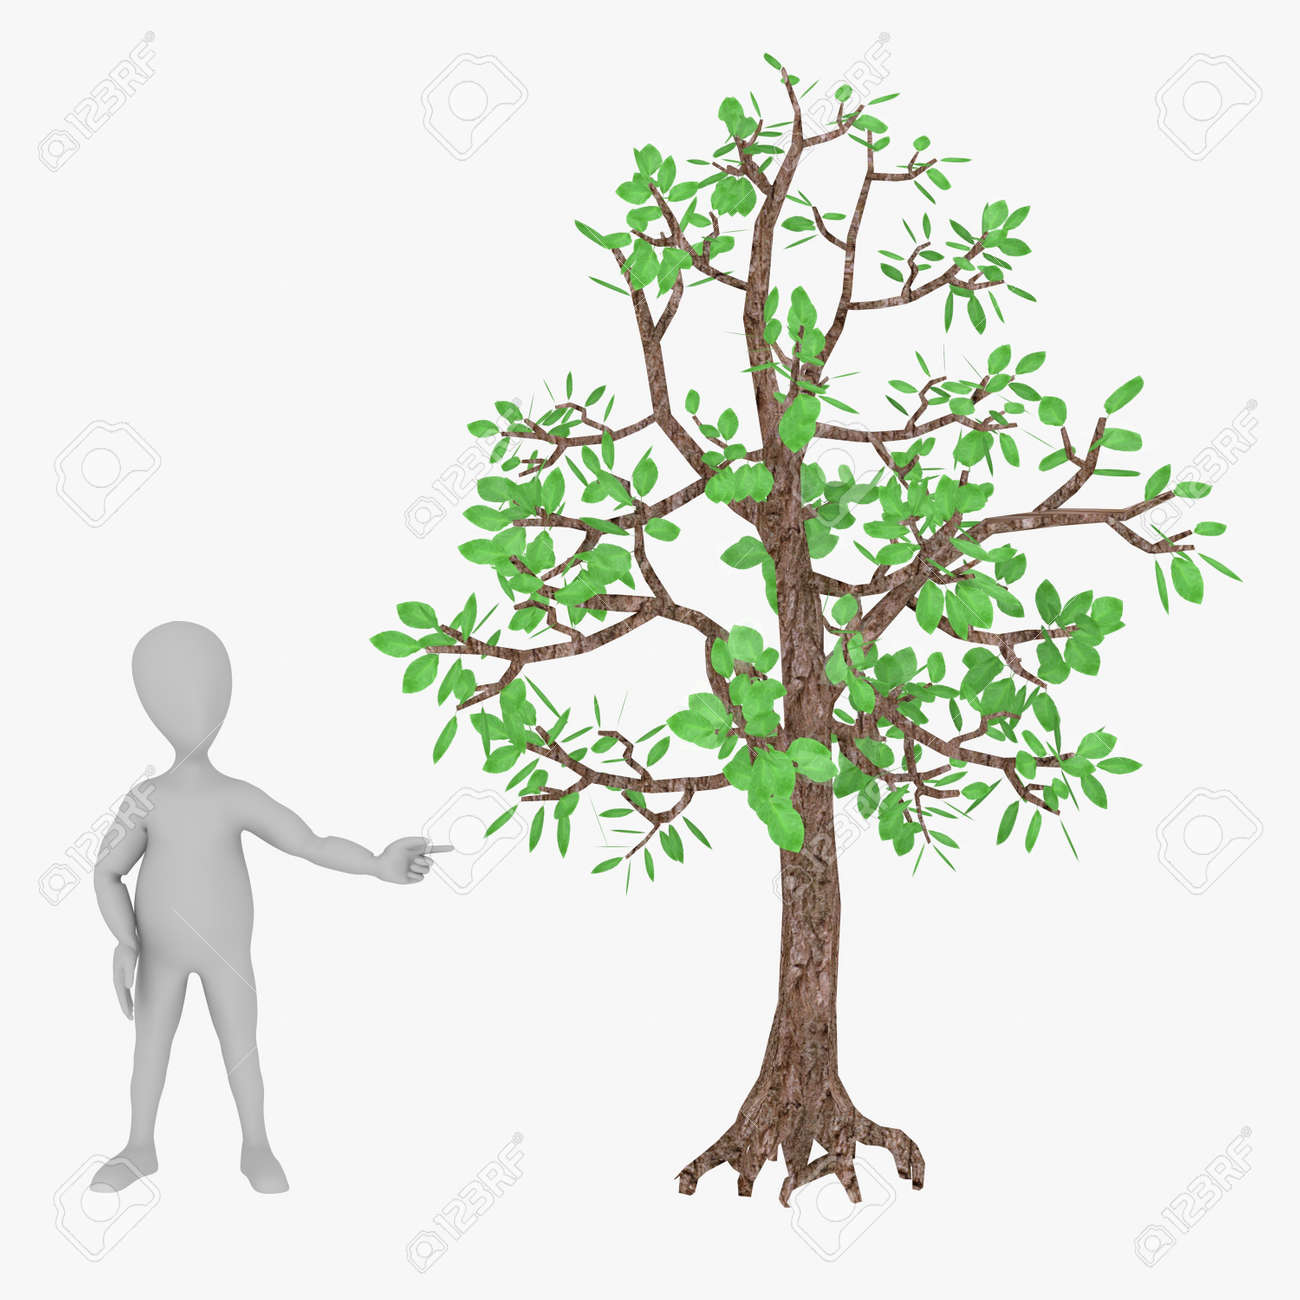 3d Render Of Cartoon Character With Tree Stock Photo Picture And Royalty Free Image Image 13722394 Simple tree 3d model in cartoon style. 123rf com